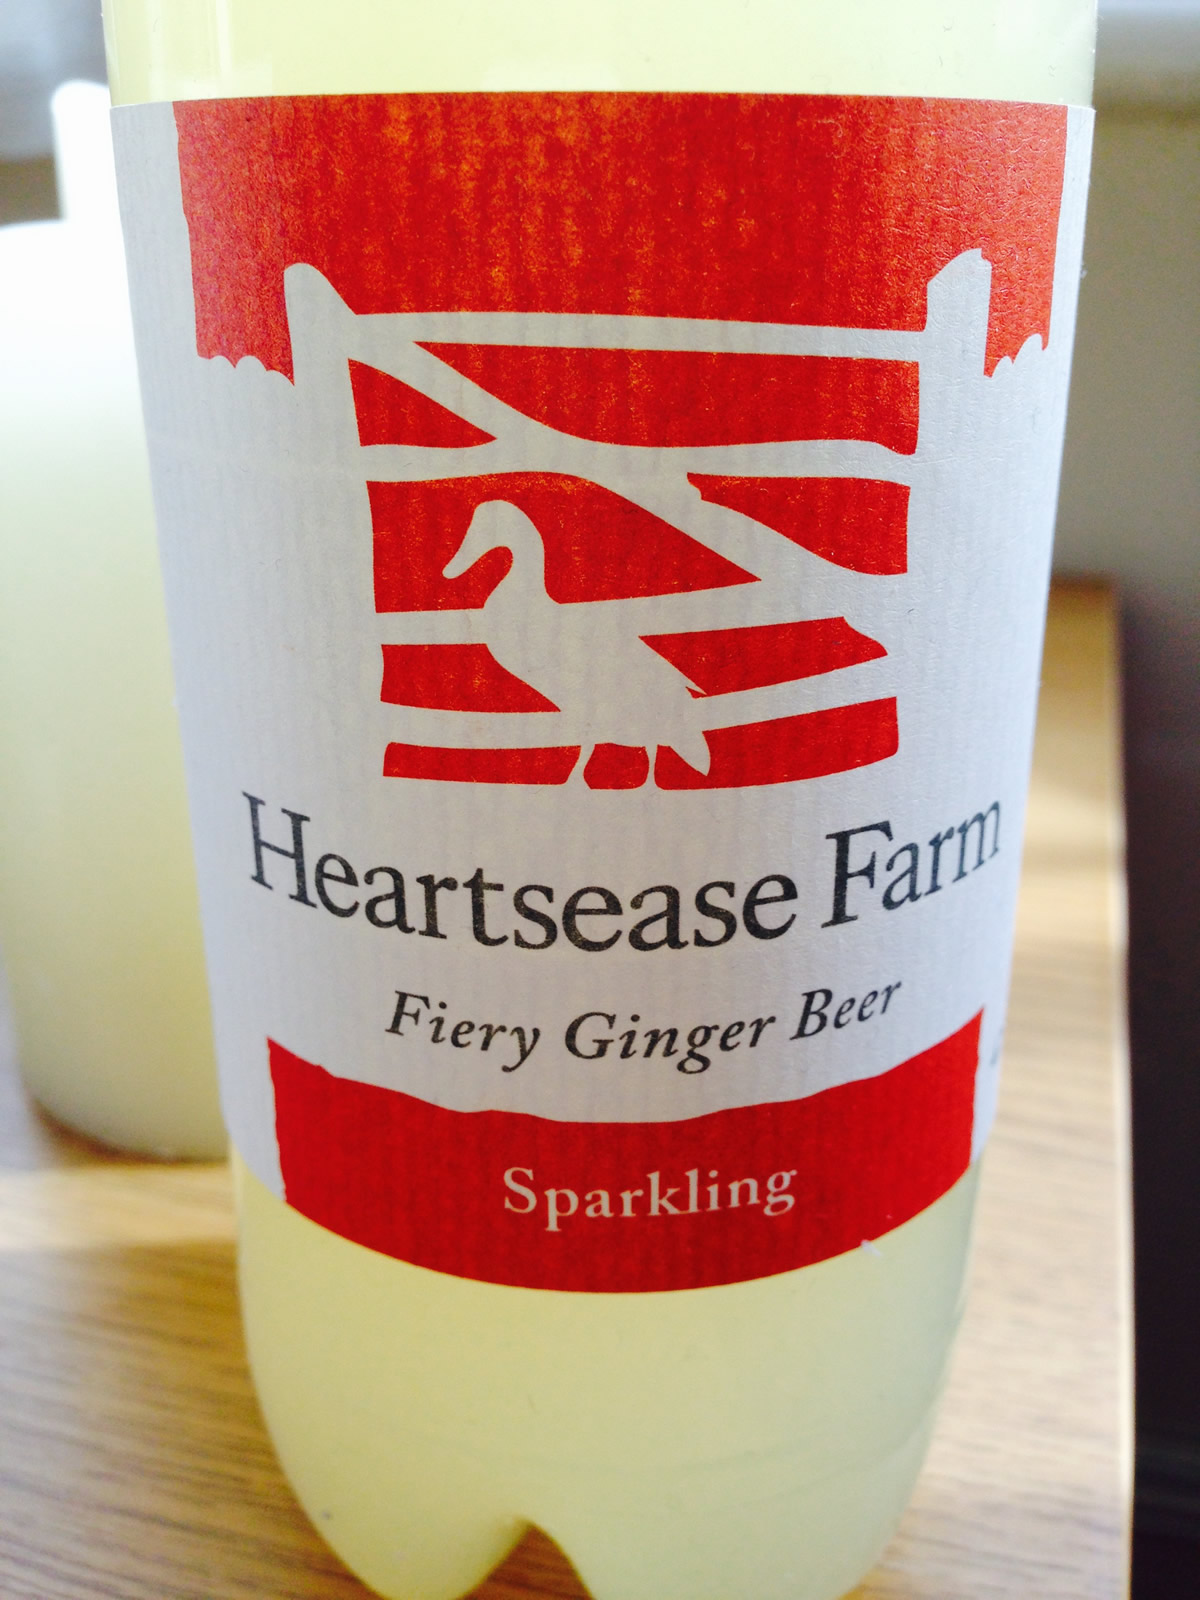 Heartsease Farm Ginger Beer